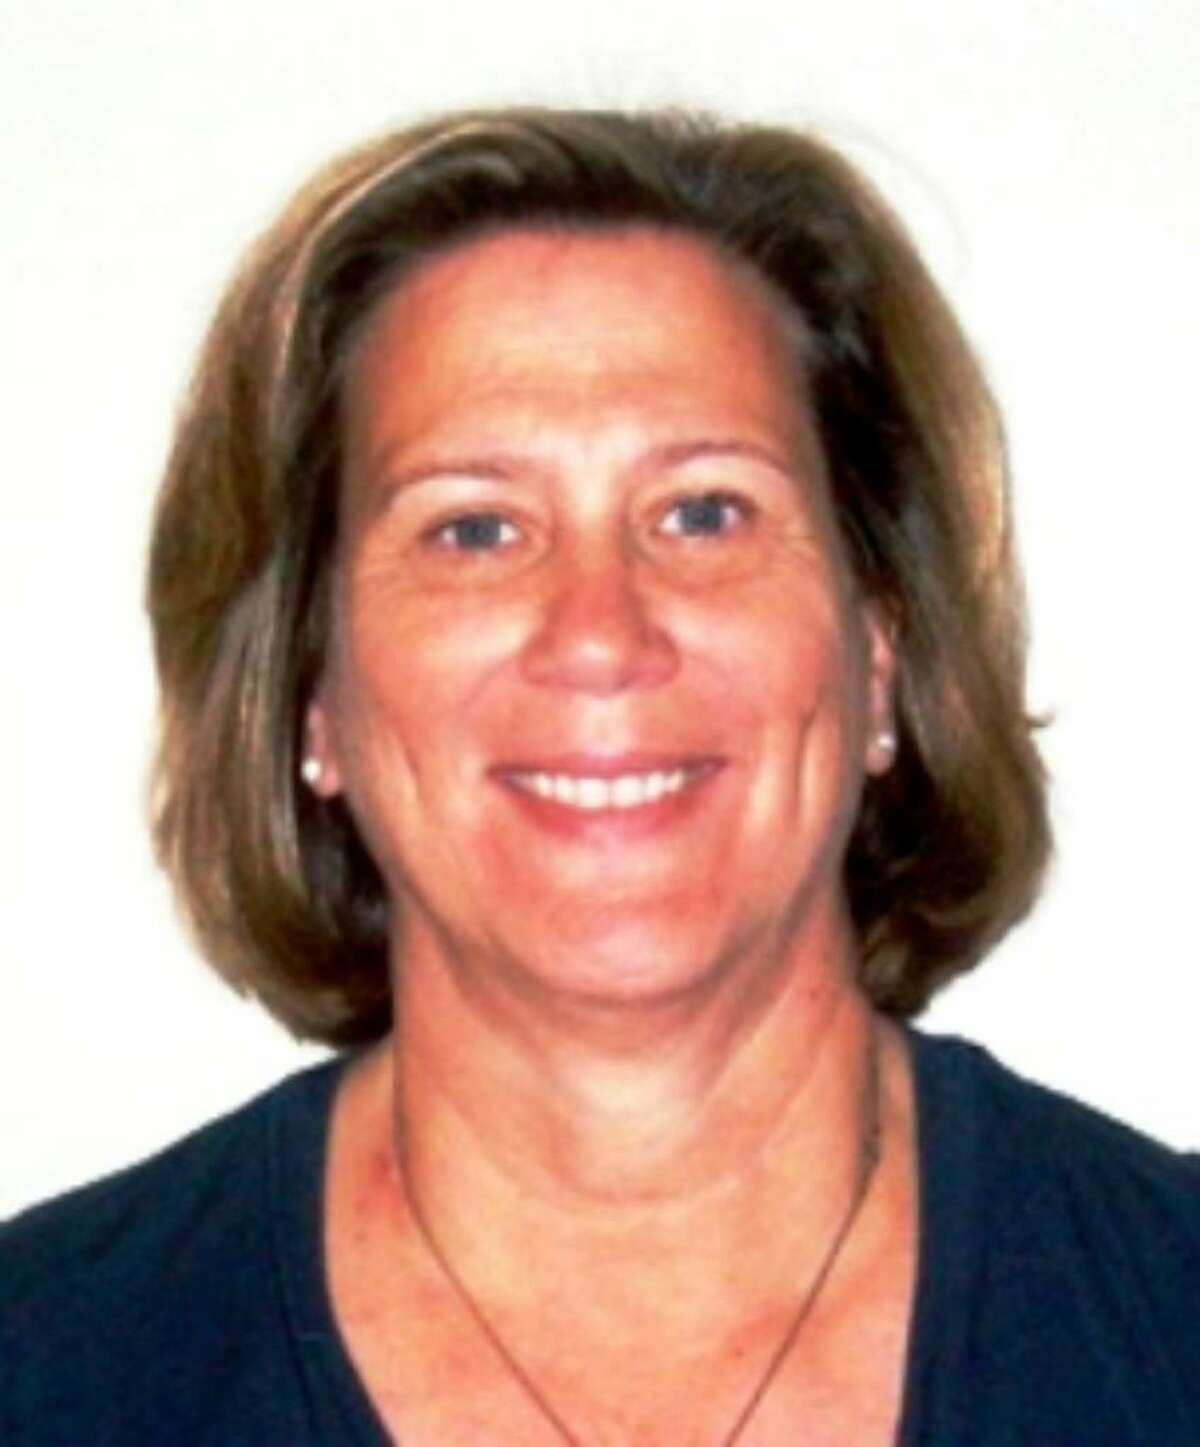 Mary Schmidt. Schmidt is a 1978 UConn grad and former All-American swimmer.